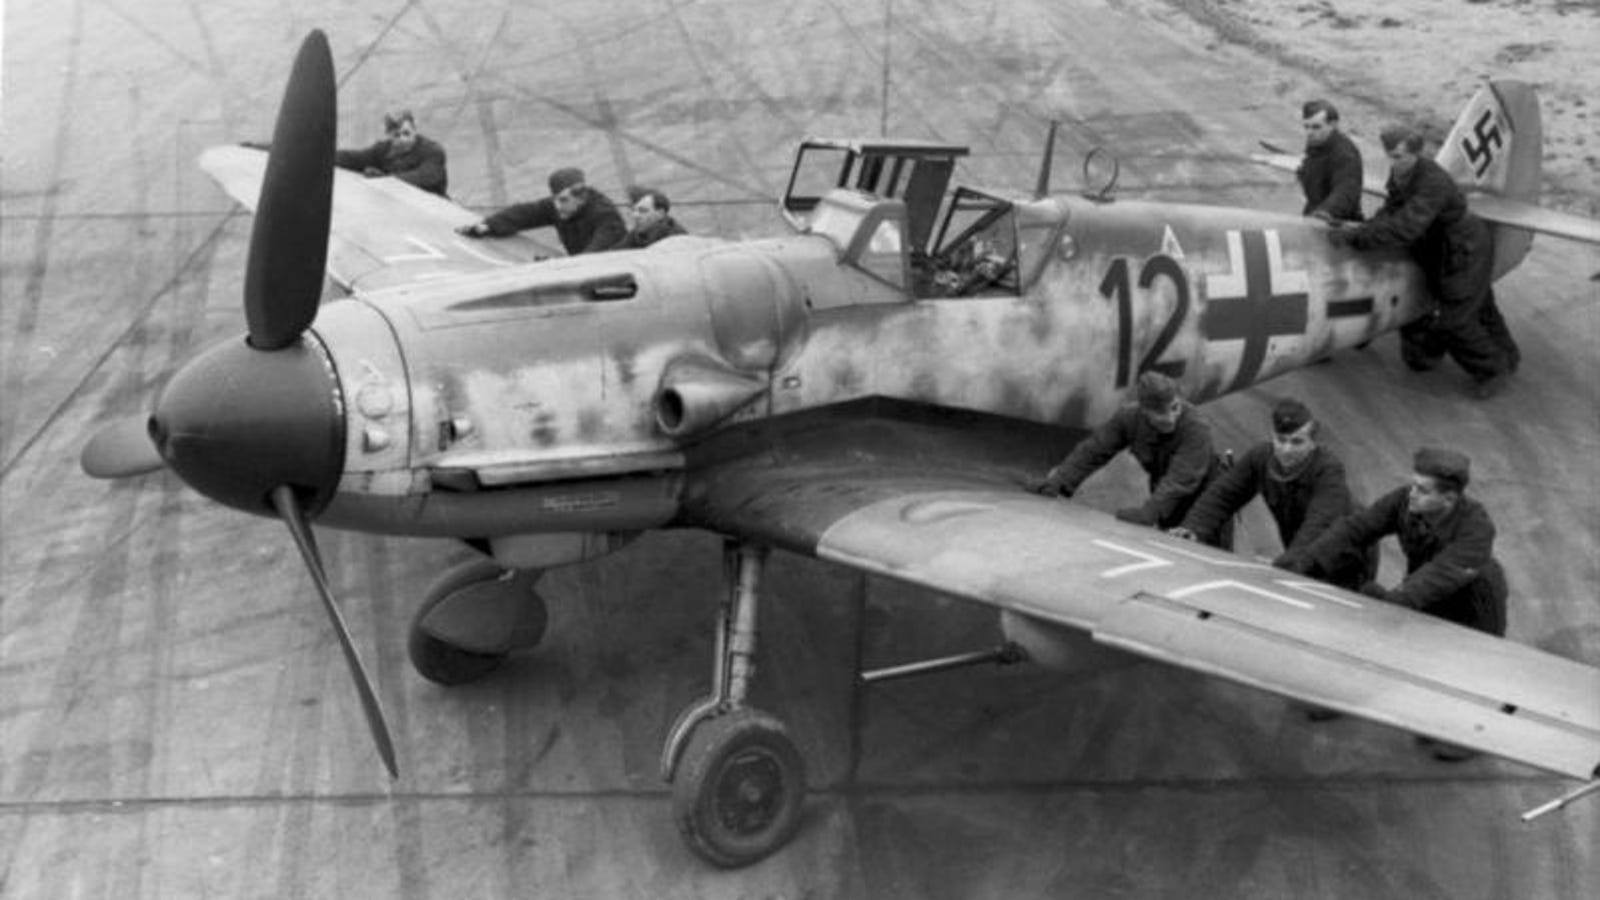 School Assignment Leads to Discovery of WWII Plane With Pilot's Body